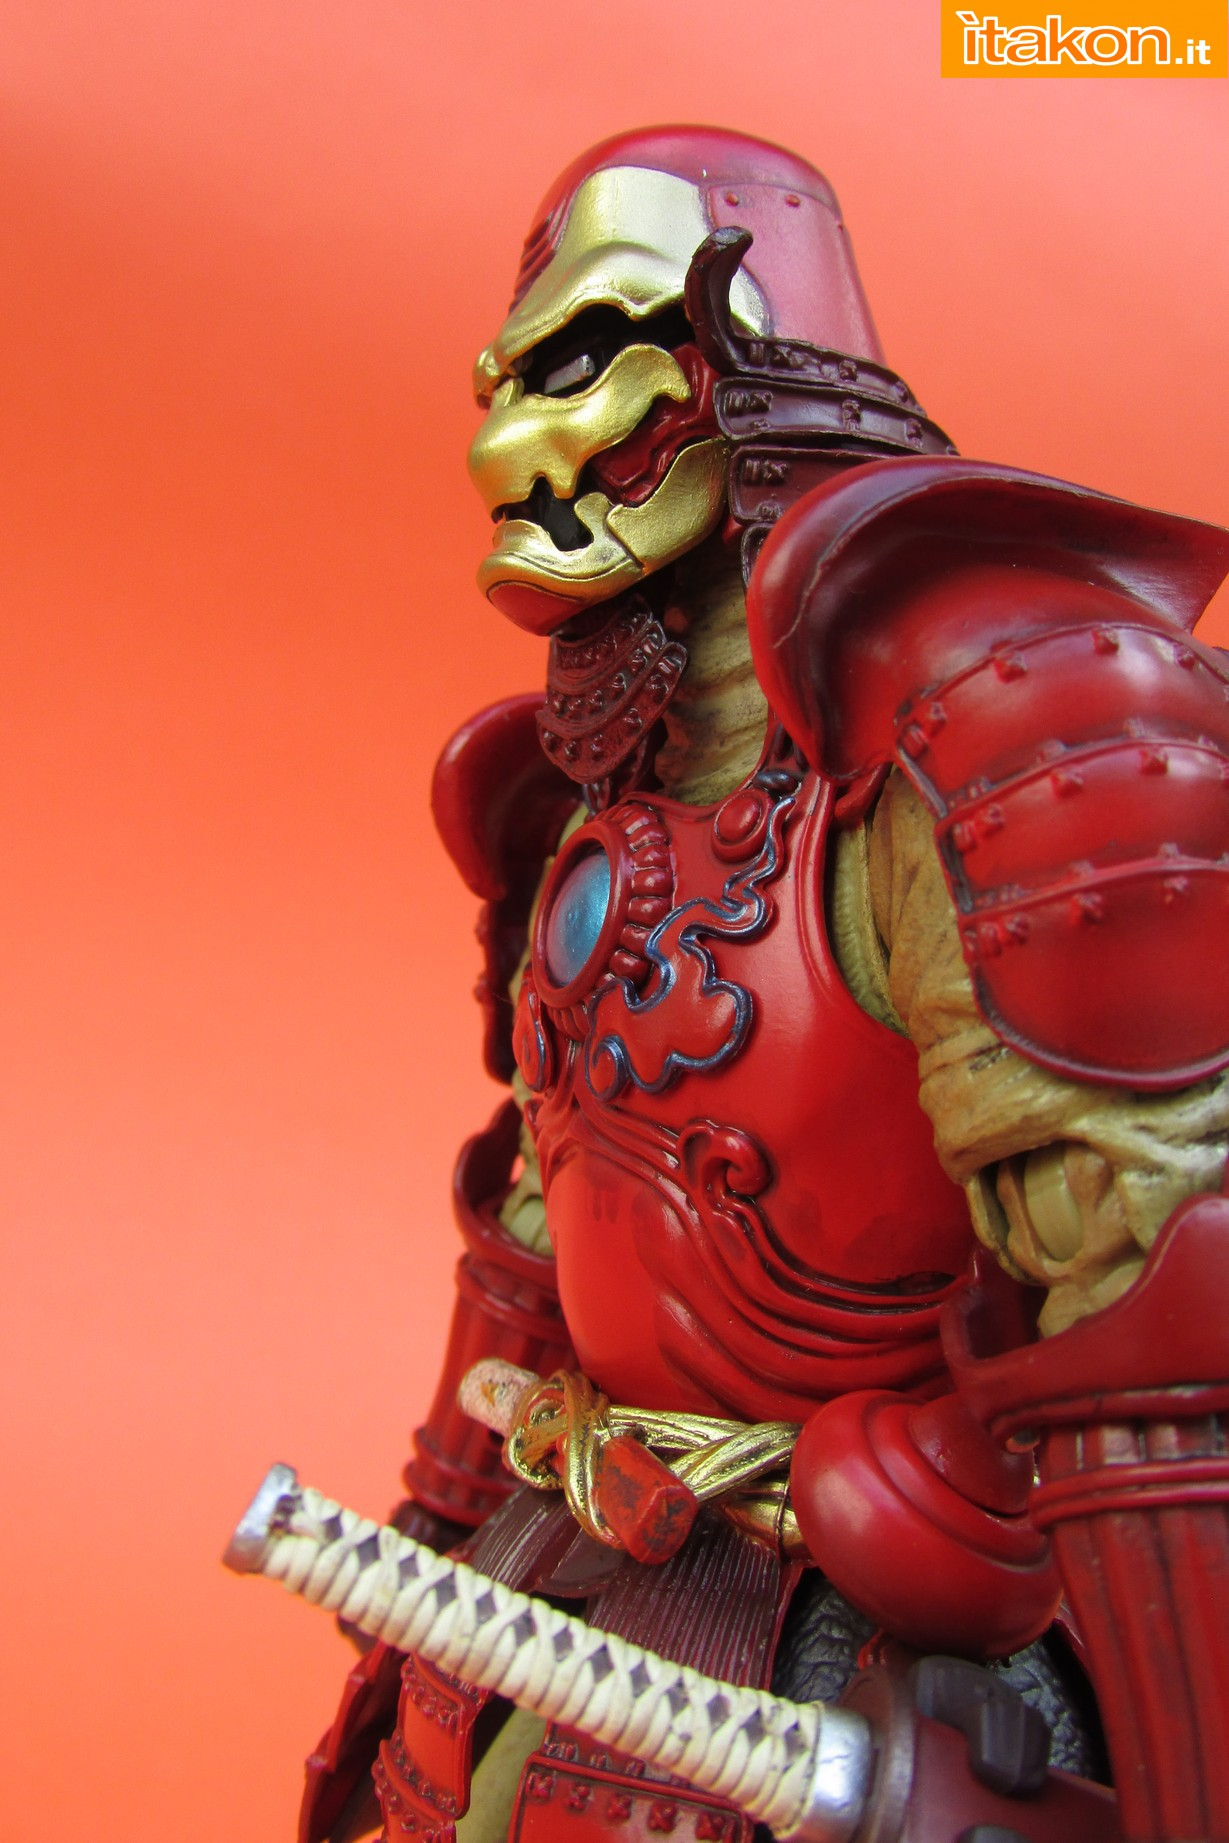 Link a Marvel Comics Koutetsu Samurai Iron Man Mark 3 Meishou MANGA REALIZATION review Bandai Itakon.it29